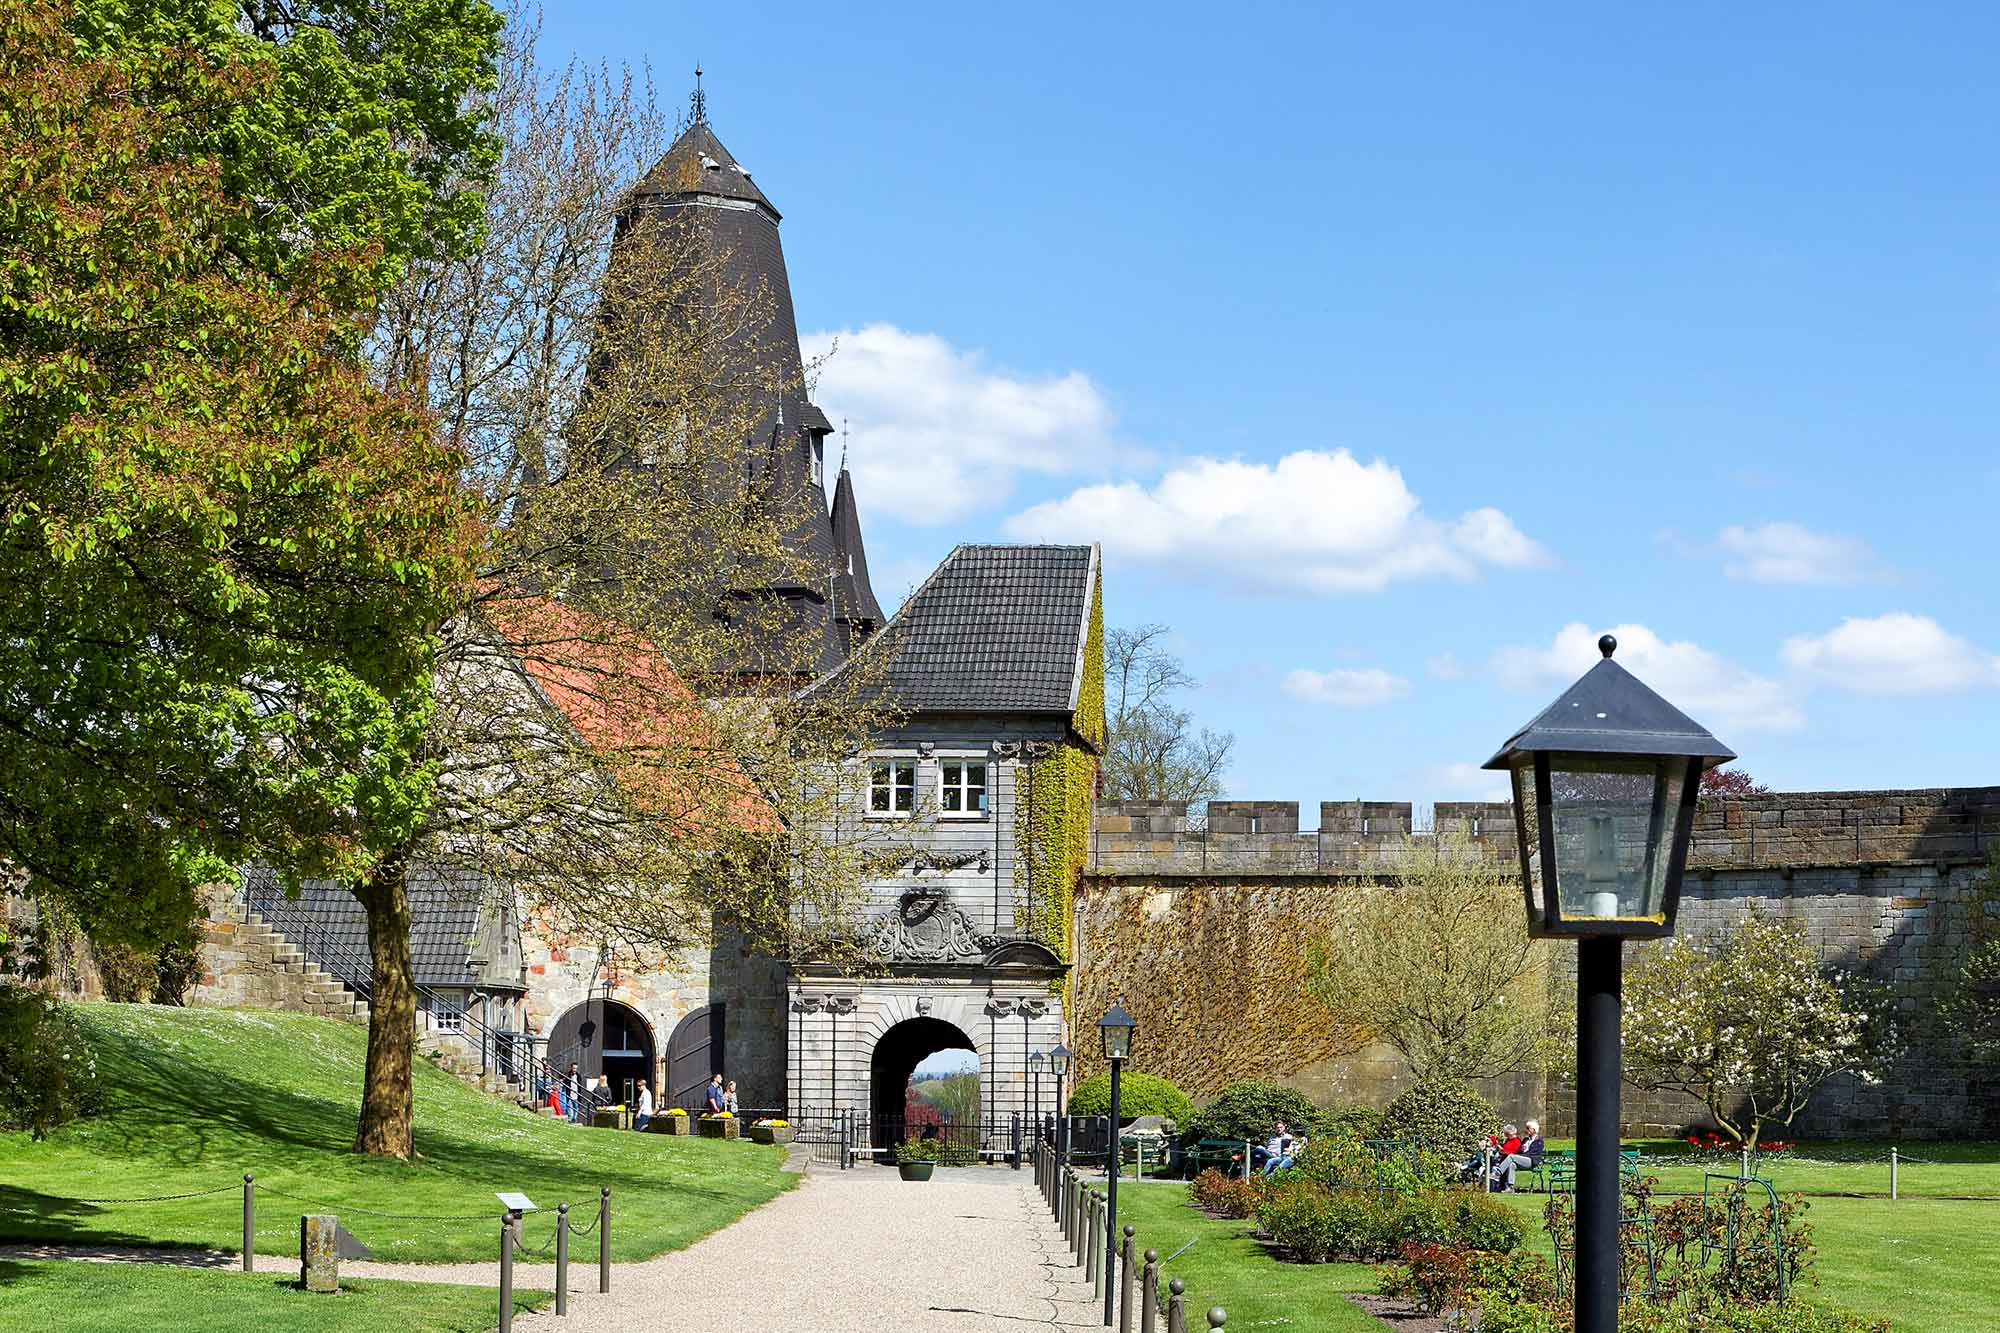 Entrance to Bentheim Castle © Andreas Richter